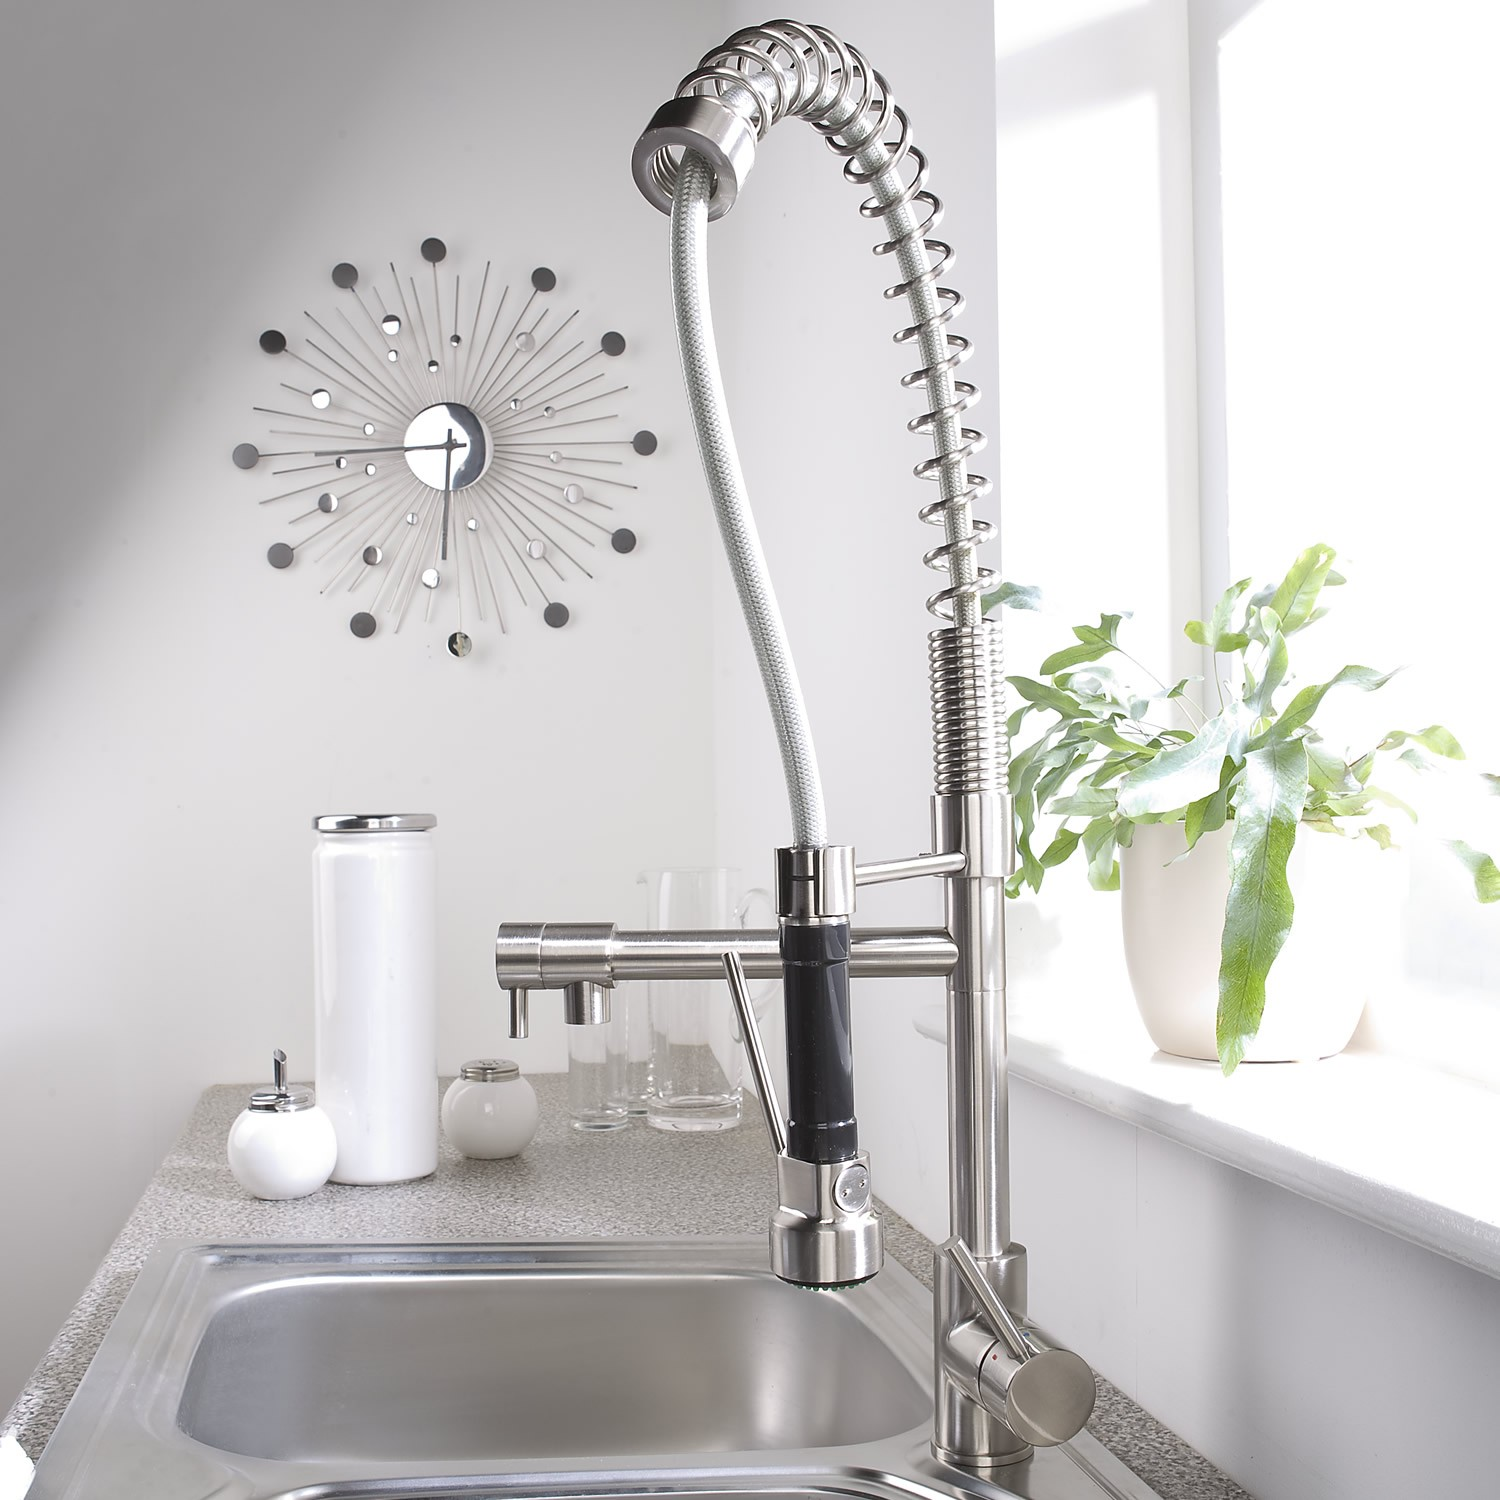 Kitchen Faucets Mississauga | Tips To Choose The Topnotch Kitchen Faucets Innovative Approaches